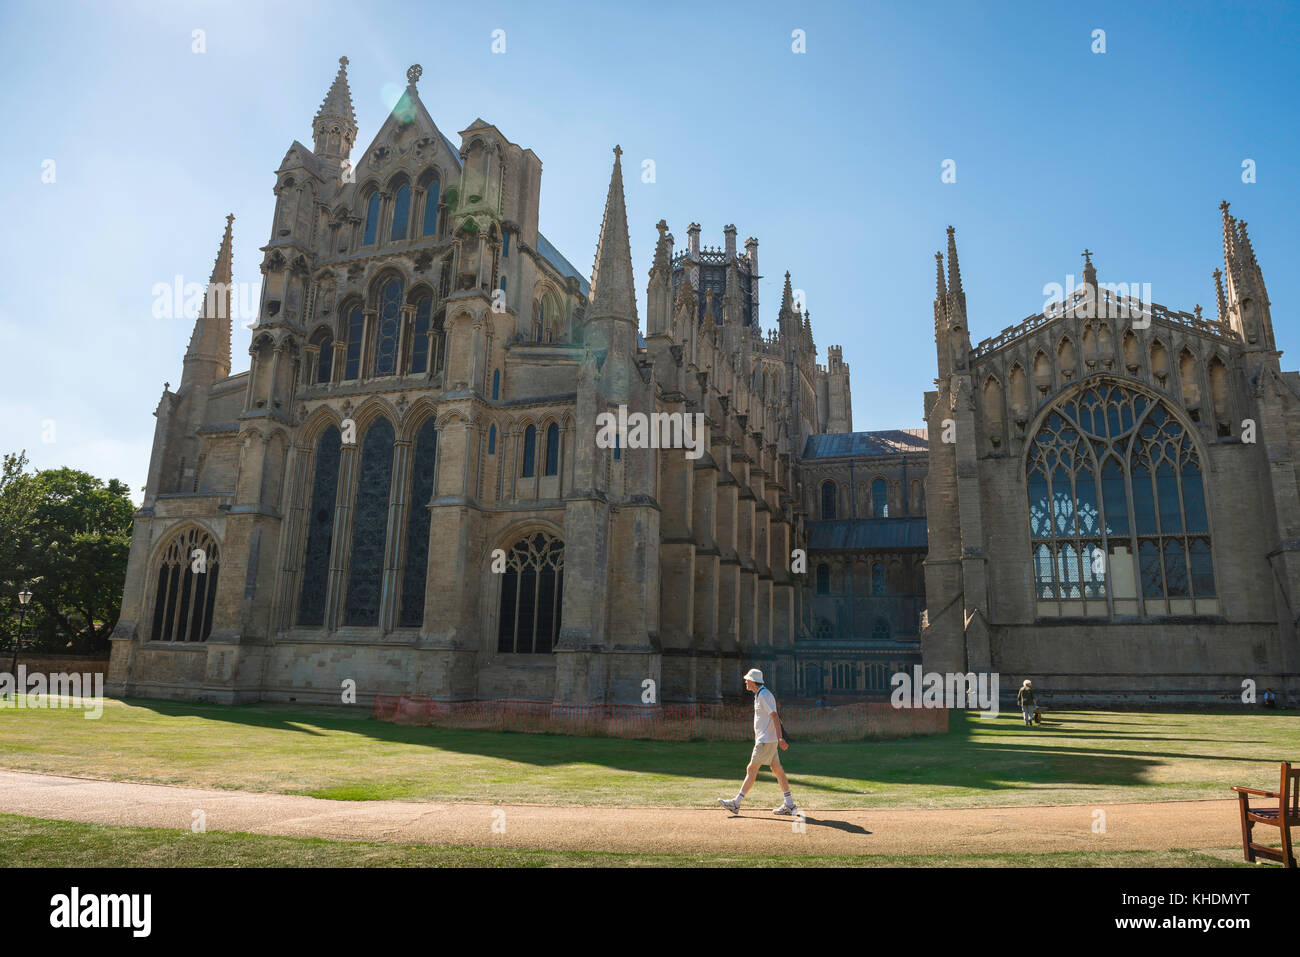 Ely Cathedral UK, a visitor to Ely walks past the east end of the city's medieval cathedral, Cambridgeshire, - Stock Image